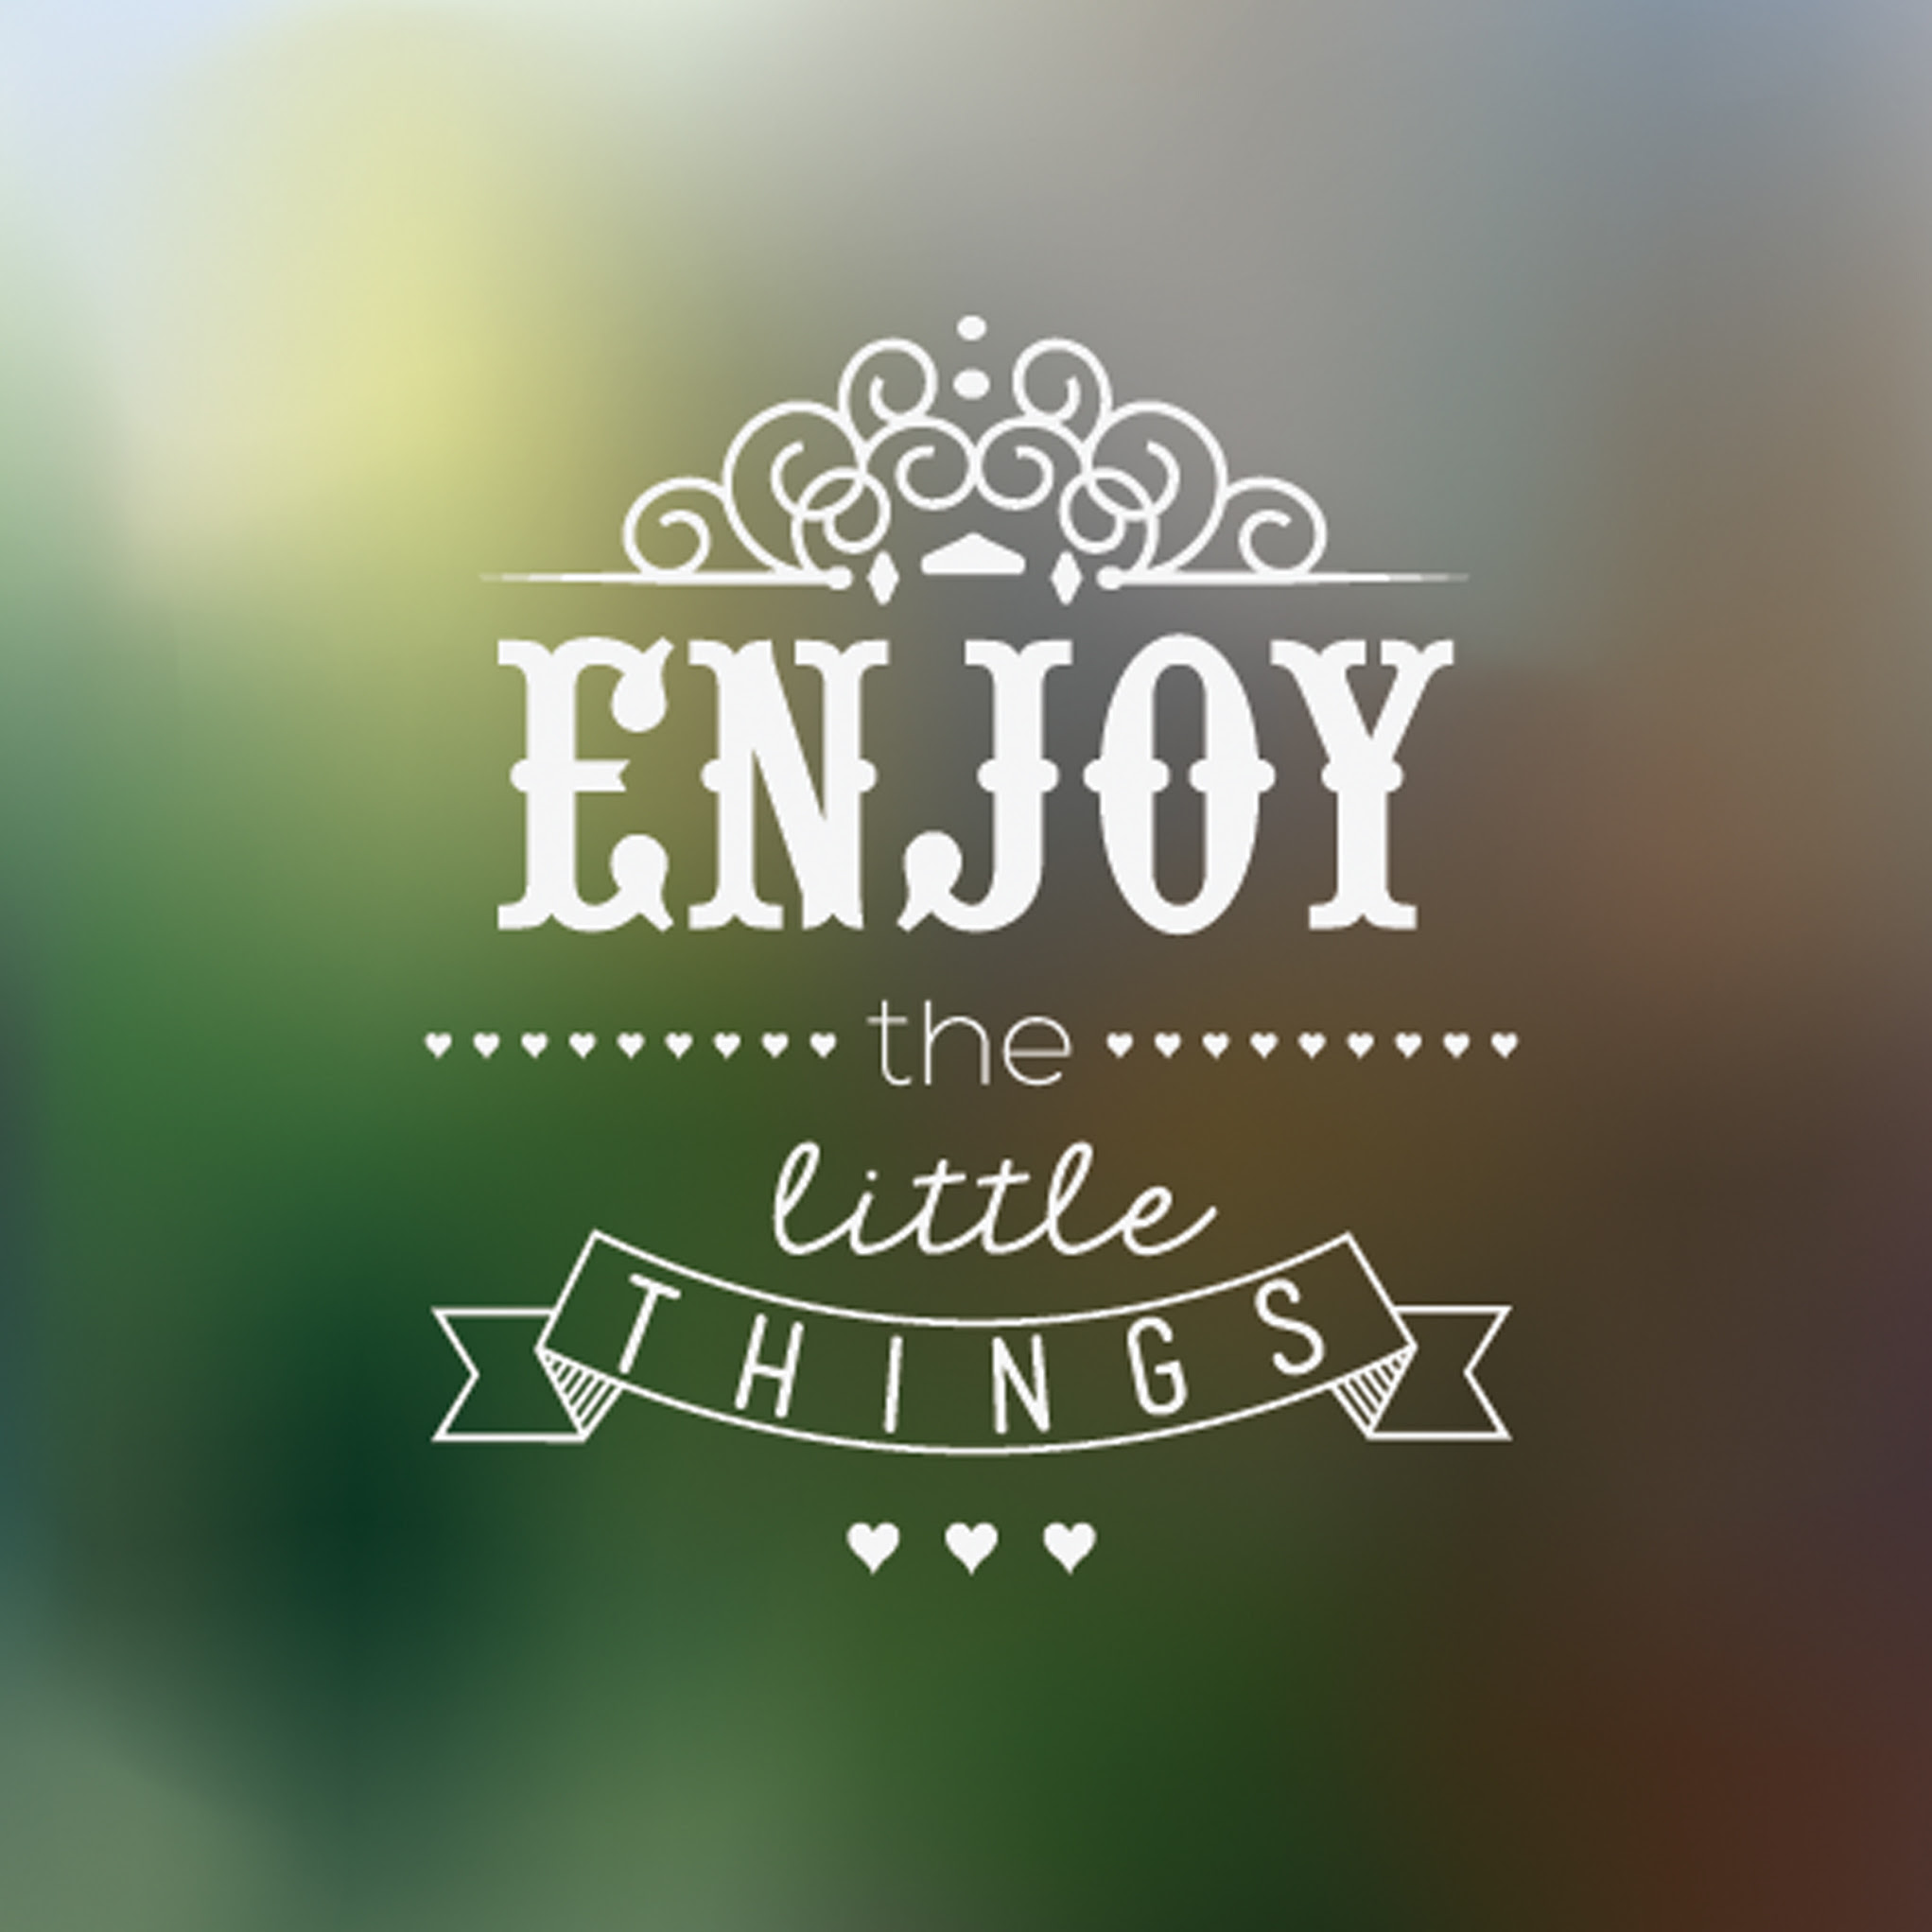 Quotes About Enjoy Little Things 40 Quotes